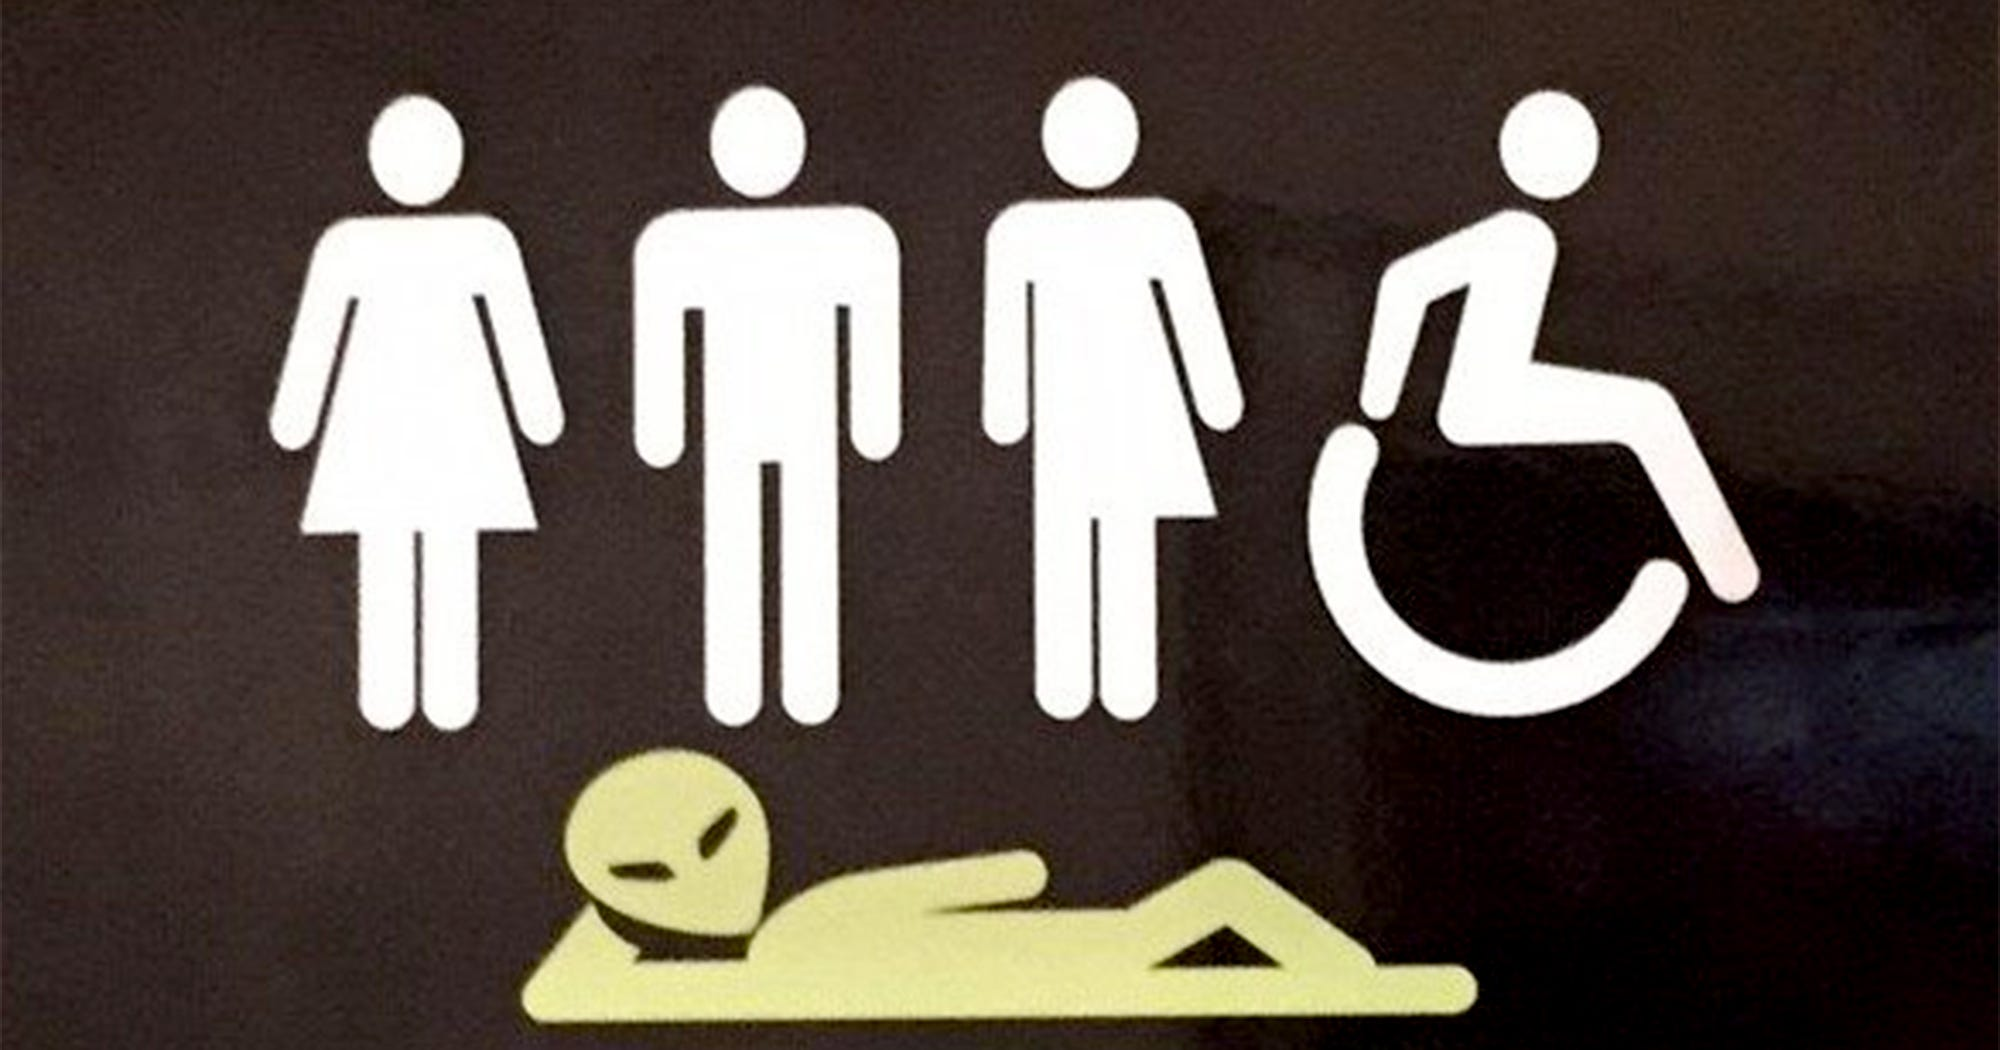 ada black bathroom neutral my do sign marcos need for ca signs white rre on business i san gender restroom